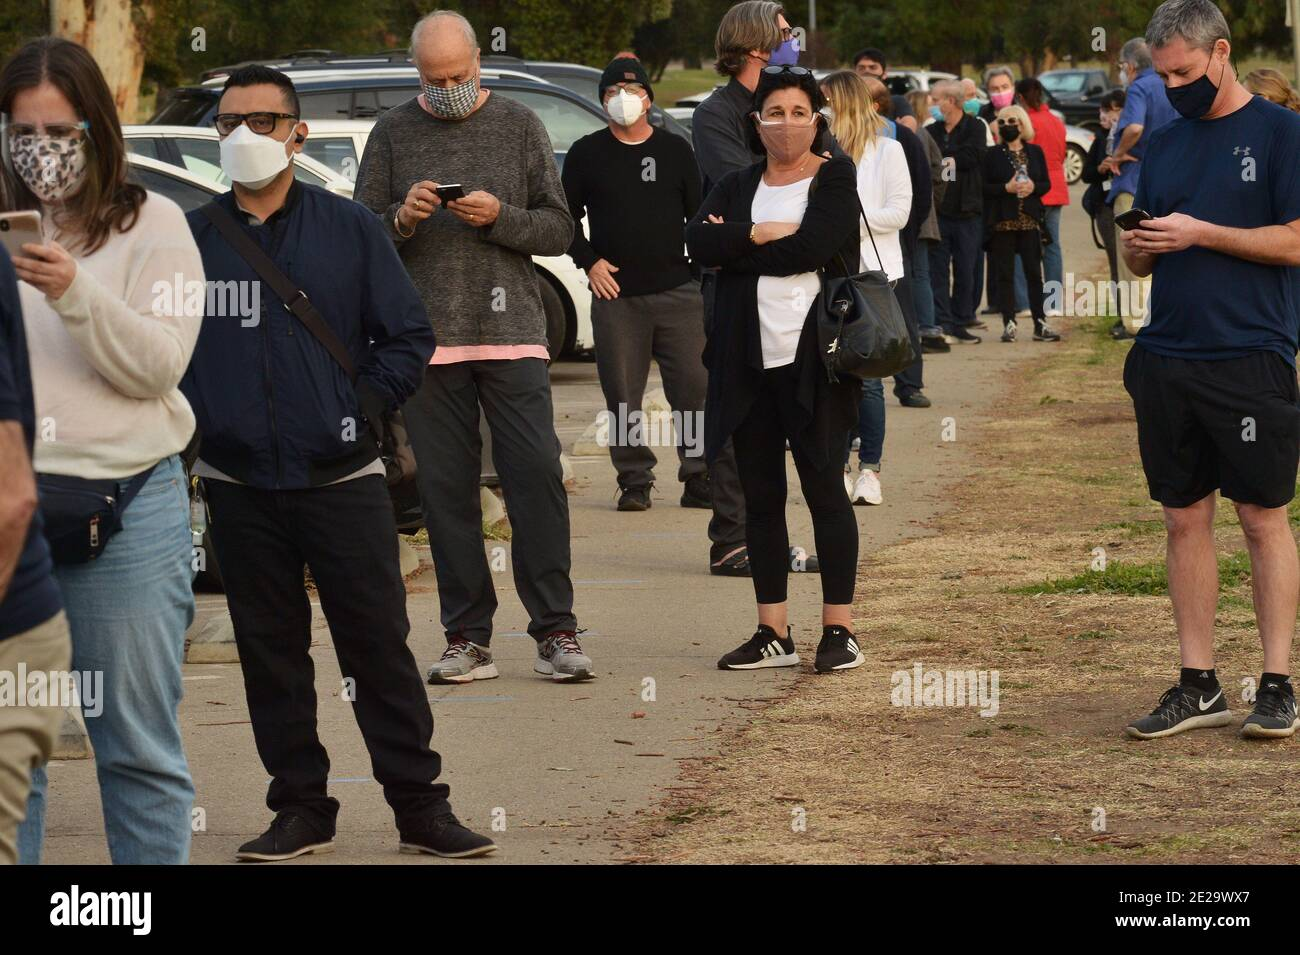 Los Angeles, California, USA. 13th Jan, 2021. Los Angeles, United States. 13th Jan, 2021. Residents wait in line to be inoculated with the Moderna COVID-19 vaccine at the Balboa Sports Center vaccination site in Los Angeles on Tuesday, January 12, 2021. People aged 65 and older and those with serious underlying health conditions in Los Angeles and across California could quickly become eligible for a COVID-19 vaccine, with federal officials urging states Tuesday to more widely distribute the shots. Photo by Jim Ruymen/UPI Credit: UPI/Alamy Live News Credit: UPI/Alamy Live News Stock Photo